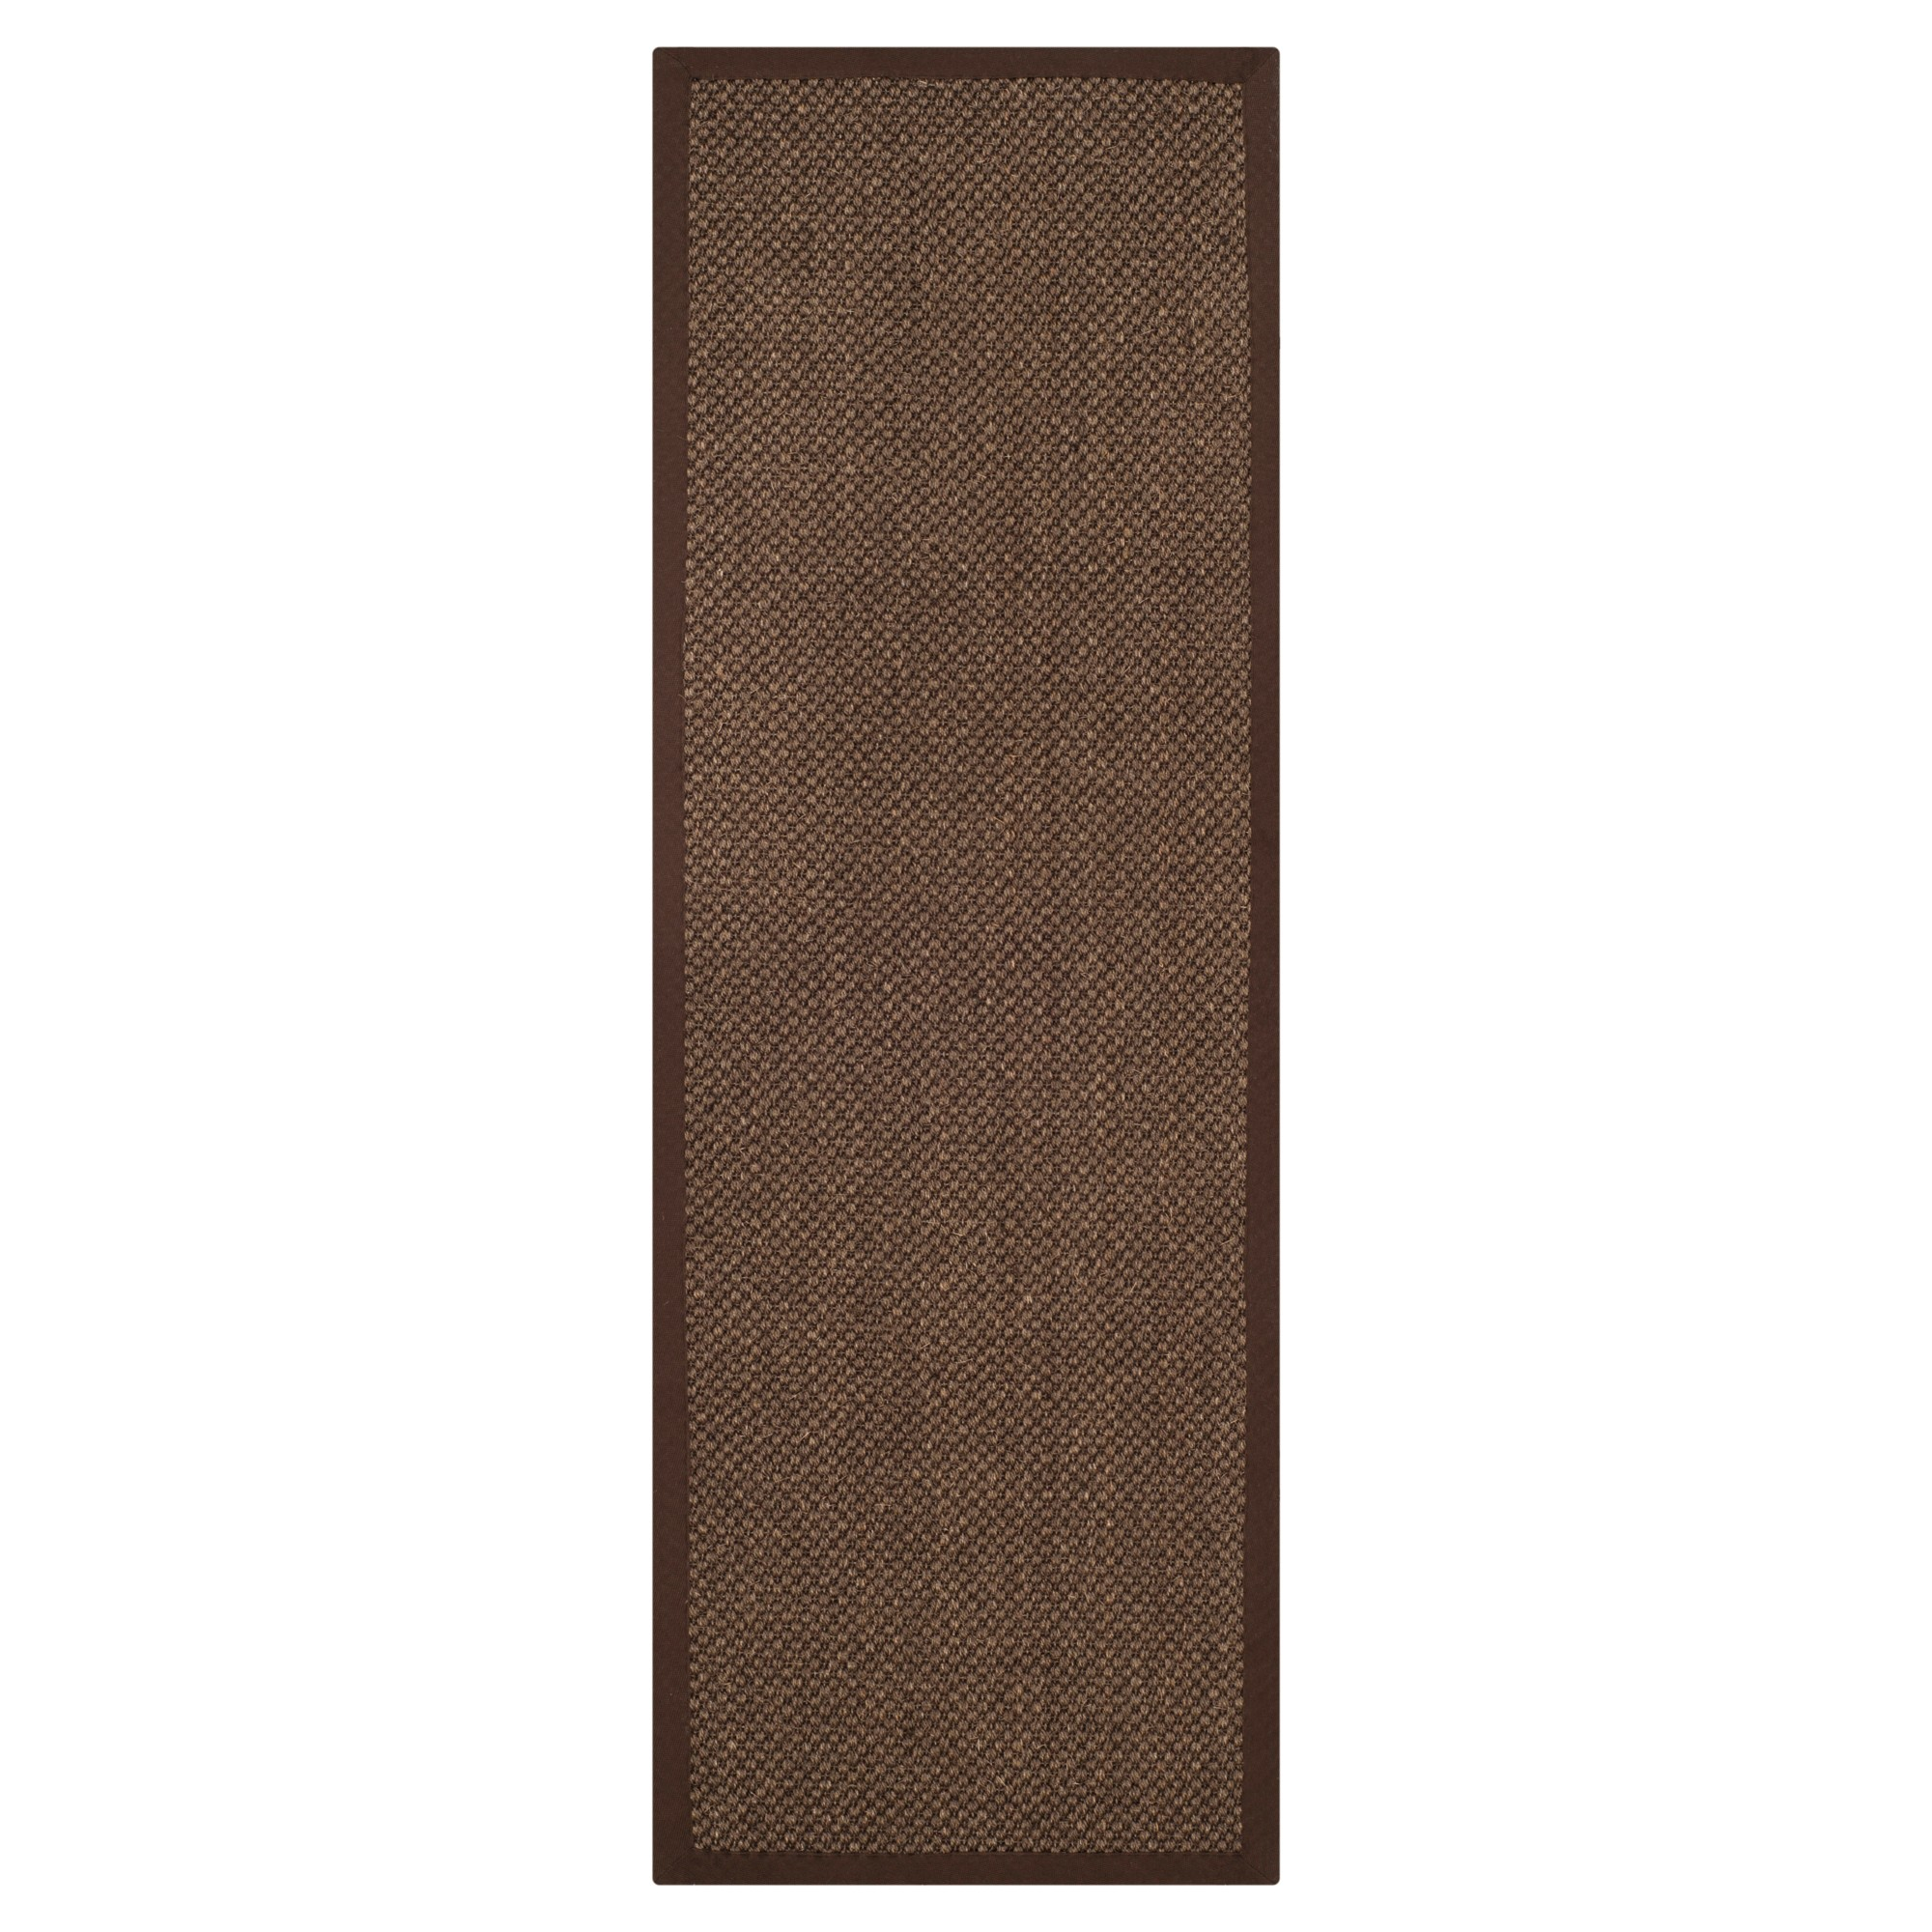 2'6x22' Solid Woven Runners Brown - Safavieh